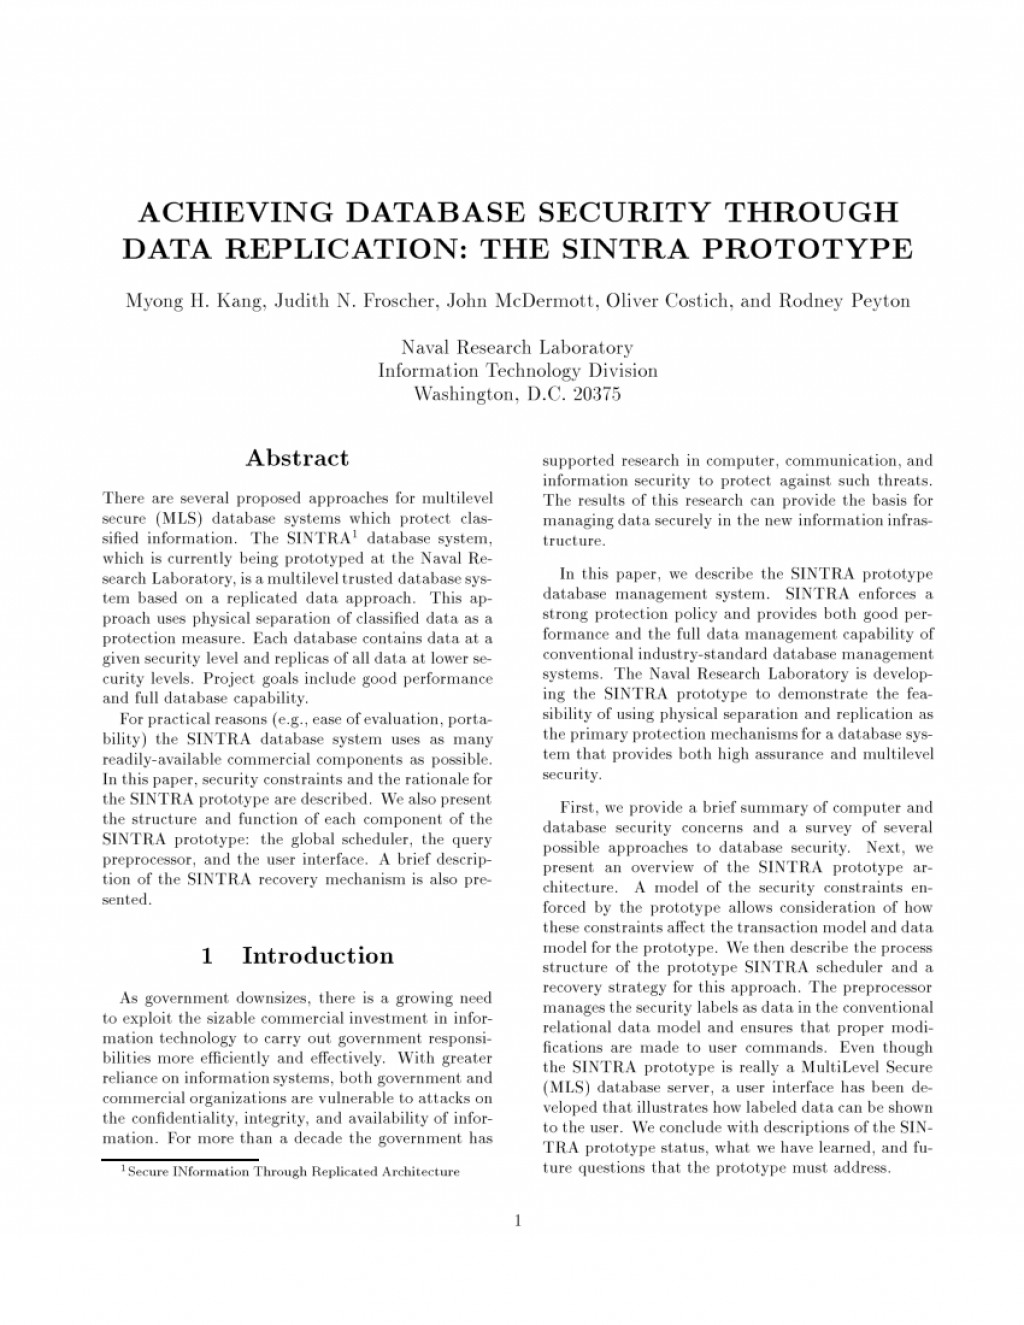 003 Database Security Research Paper Abstract Fascinating Large